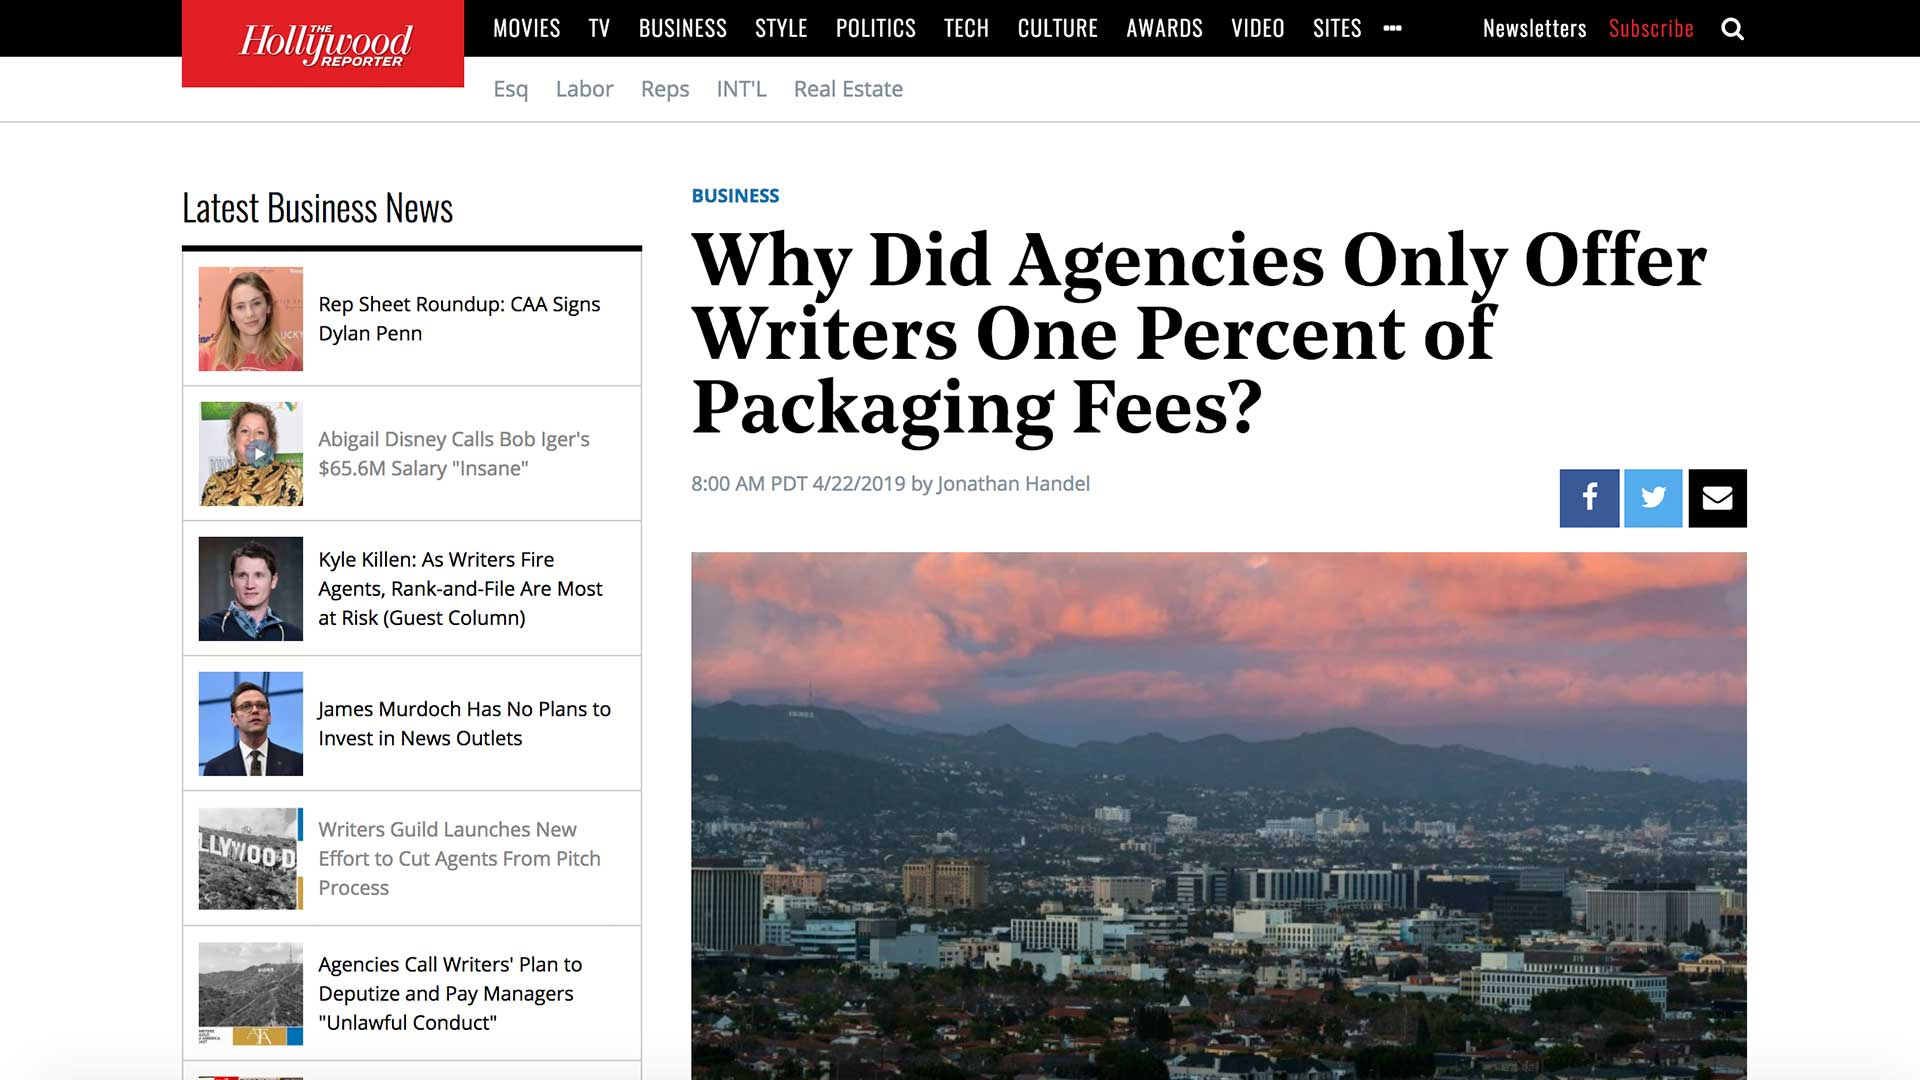 Fairness Rocks News Why Did Agencies Only Offer Writers One Percent of Packaging Fees?